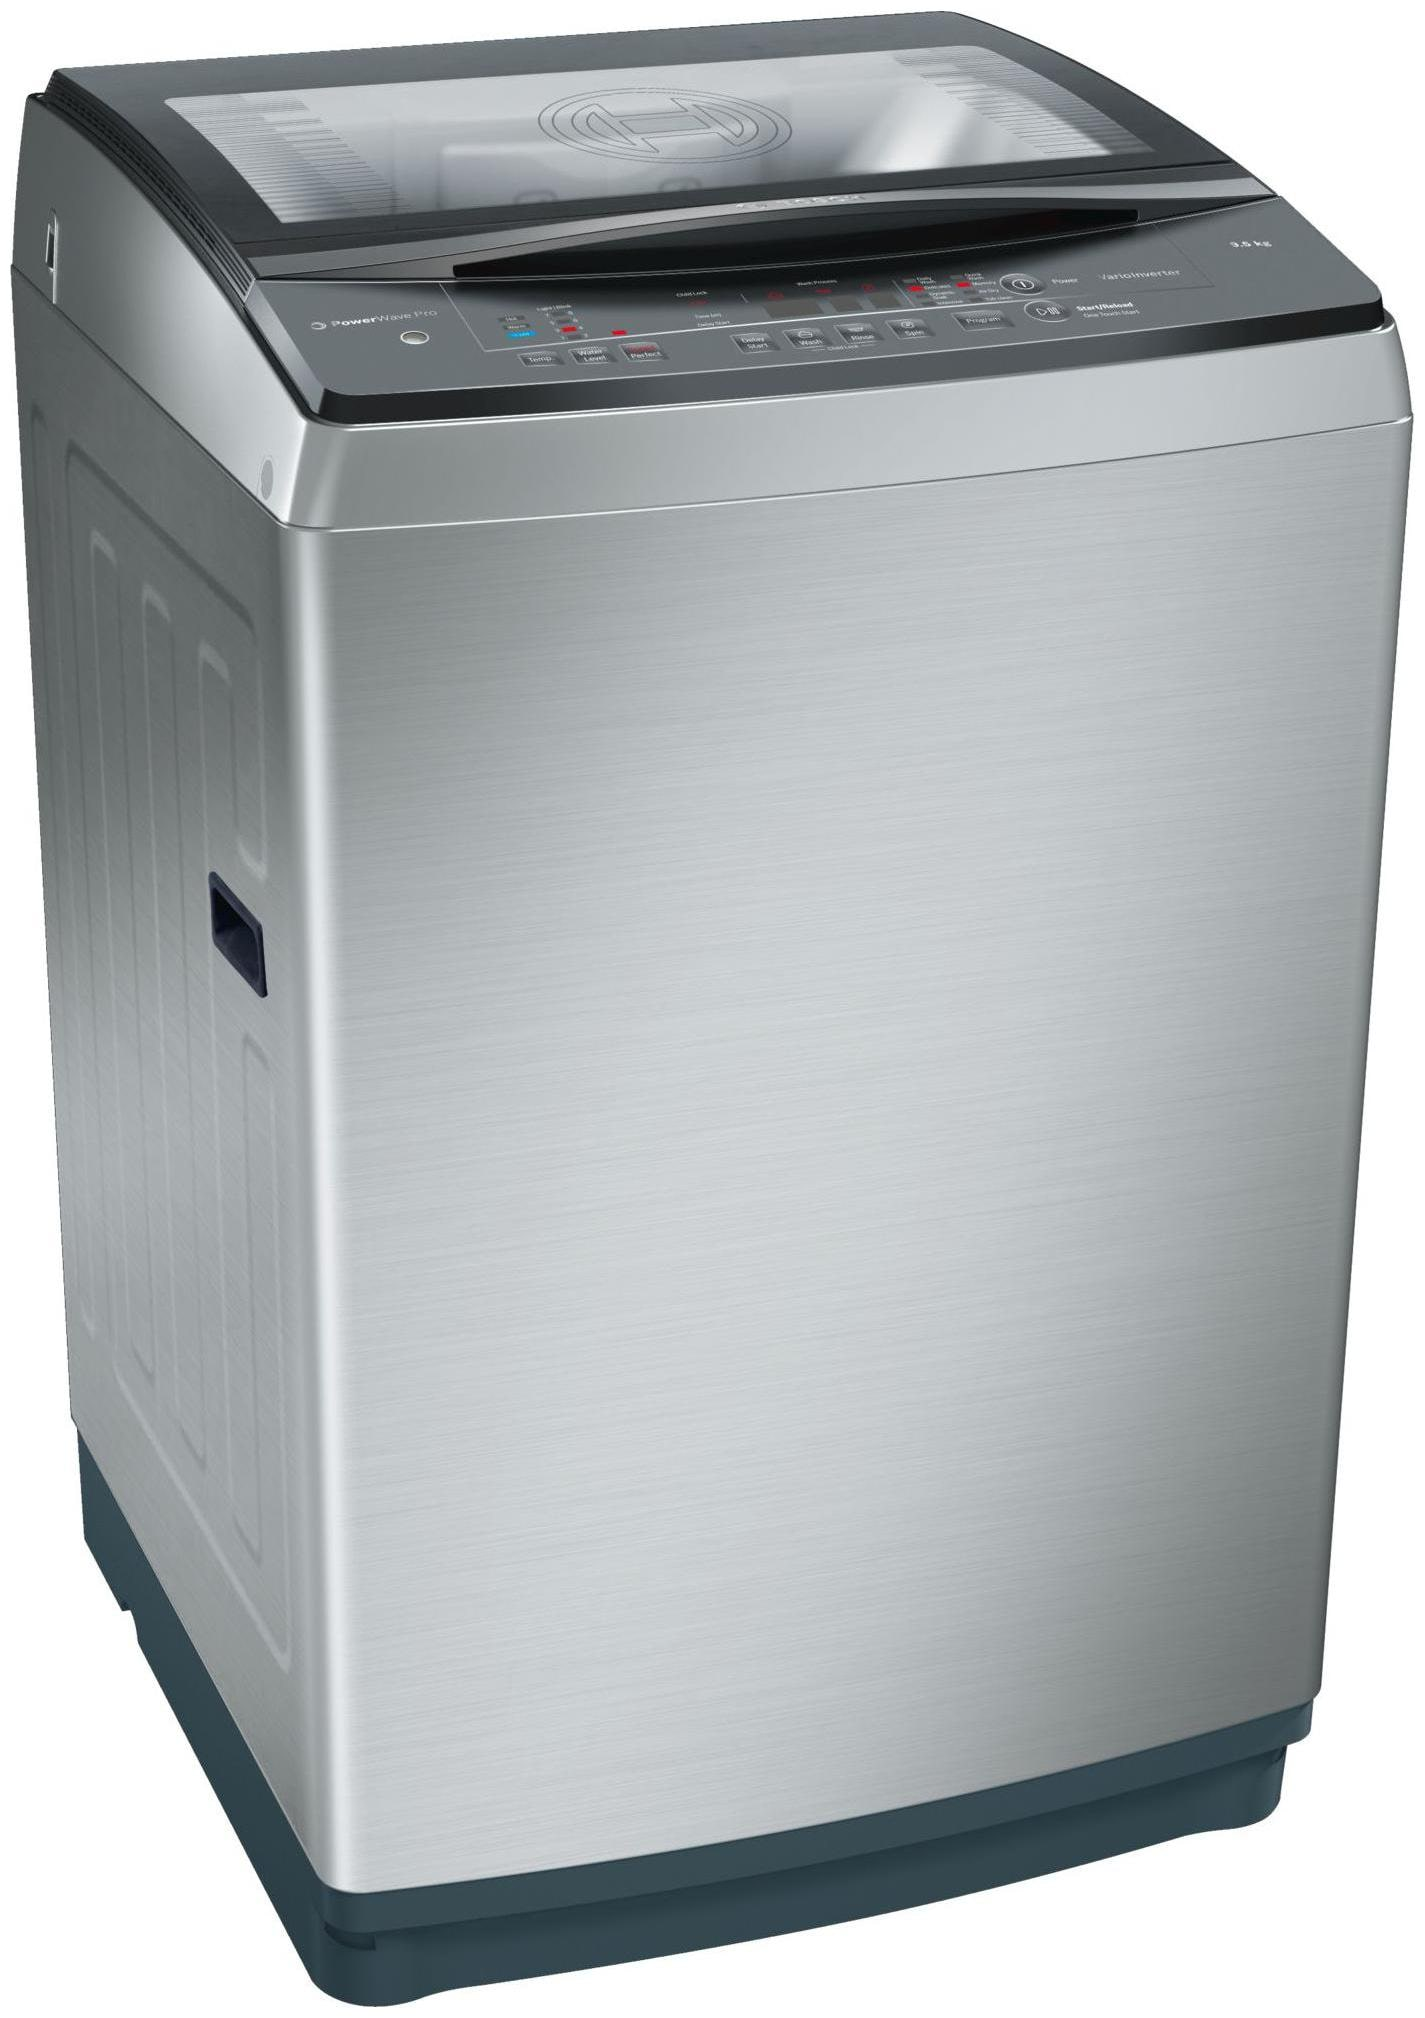 Bosch 9.5 kg Inverter Fully Automatic Top Load Silver